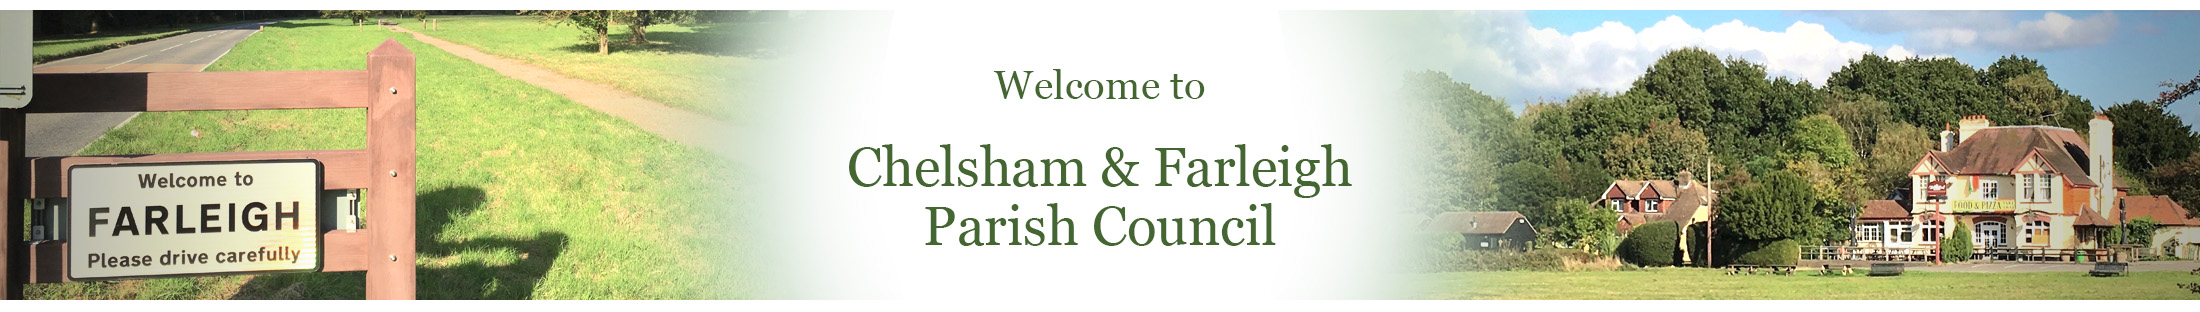 Header Image for Chelsham & Farleigh Parish Council